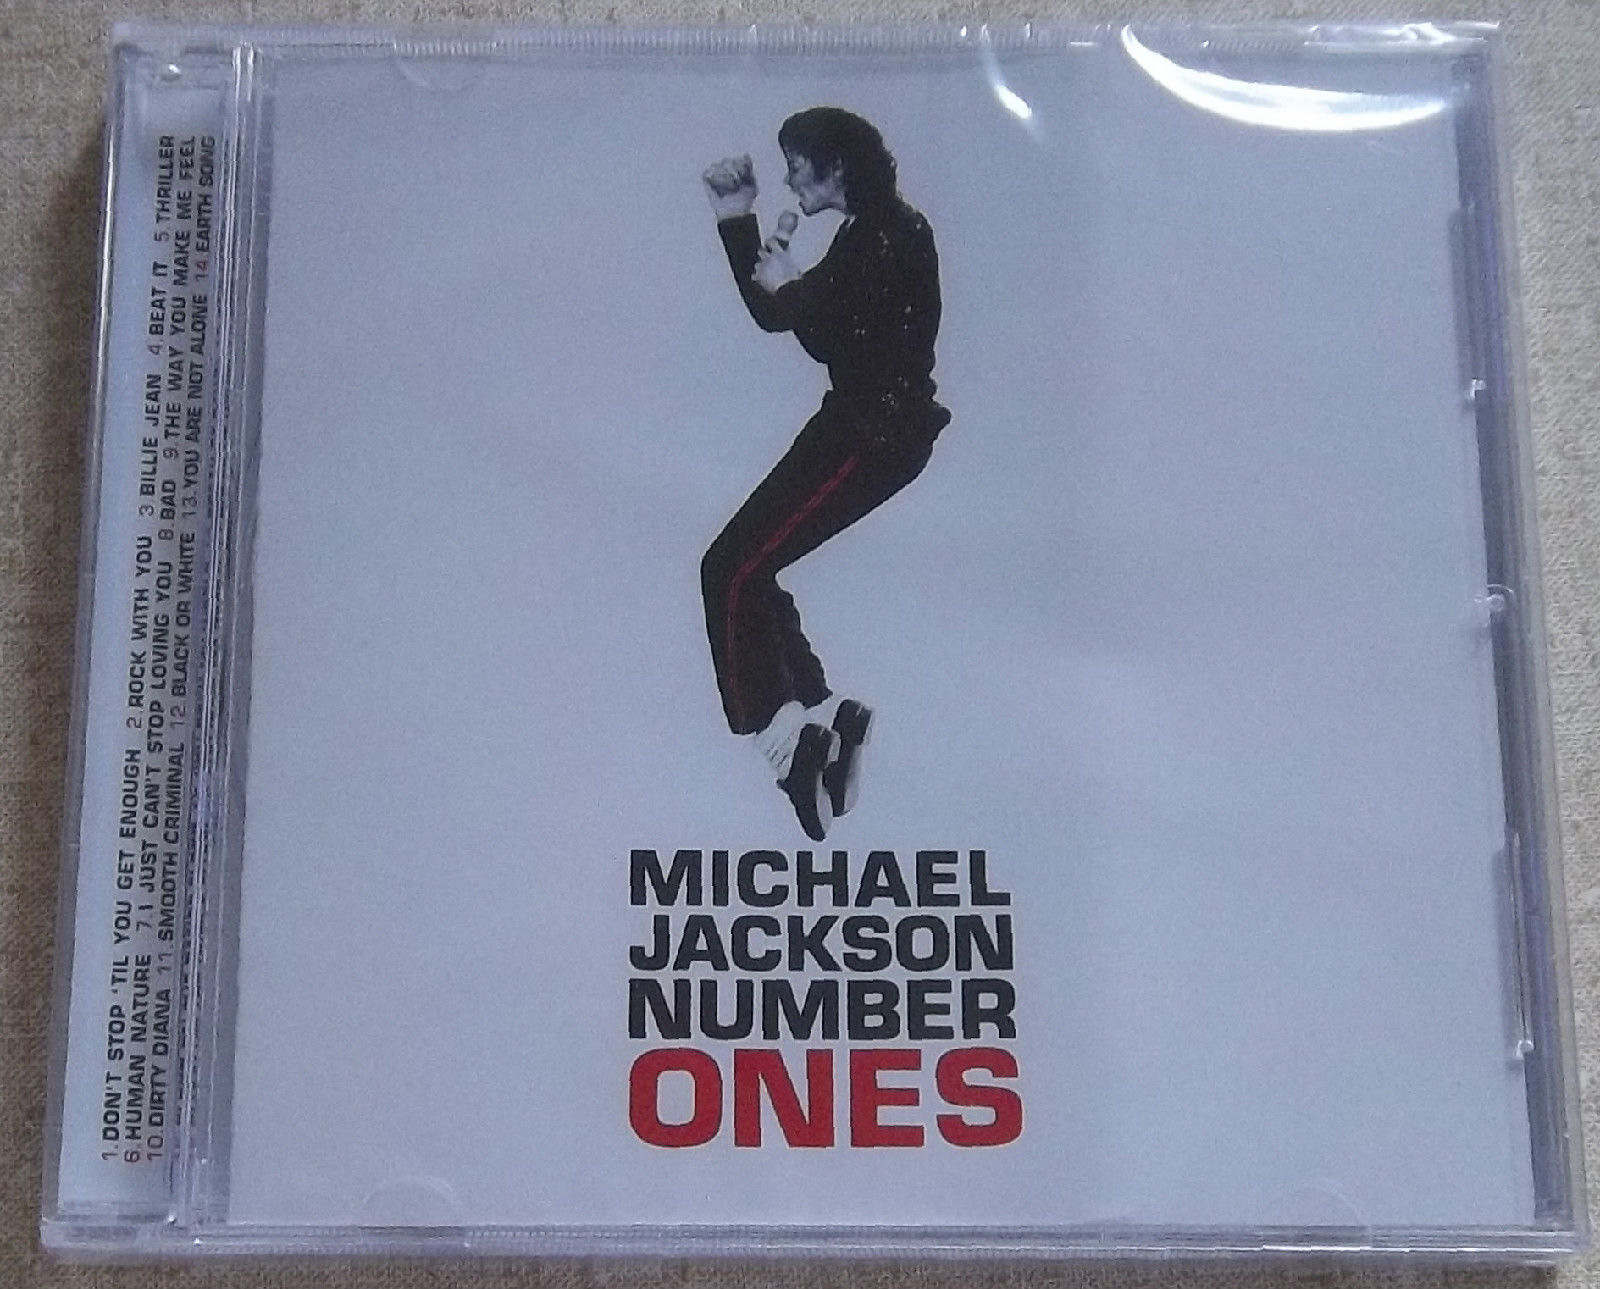 Michael Jackson Number Ones South Africa Cat Cdepc6735